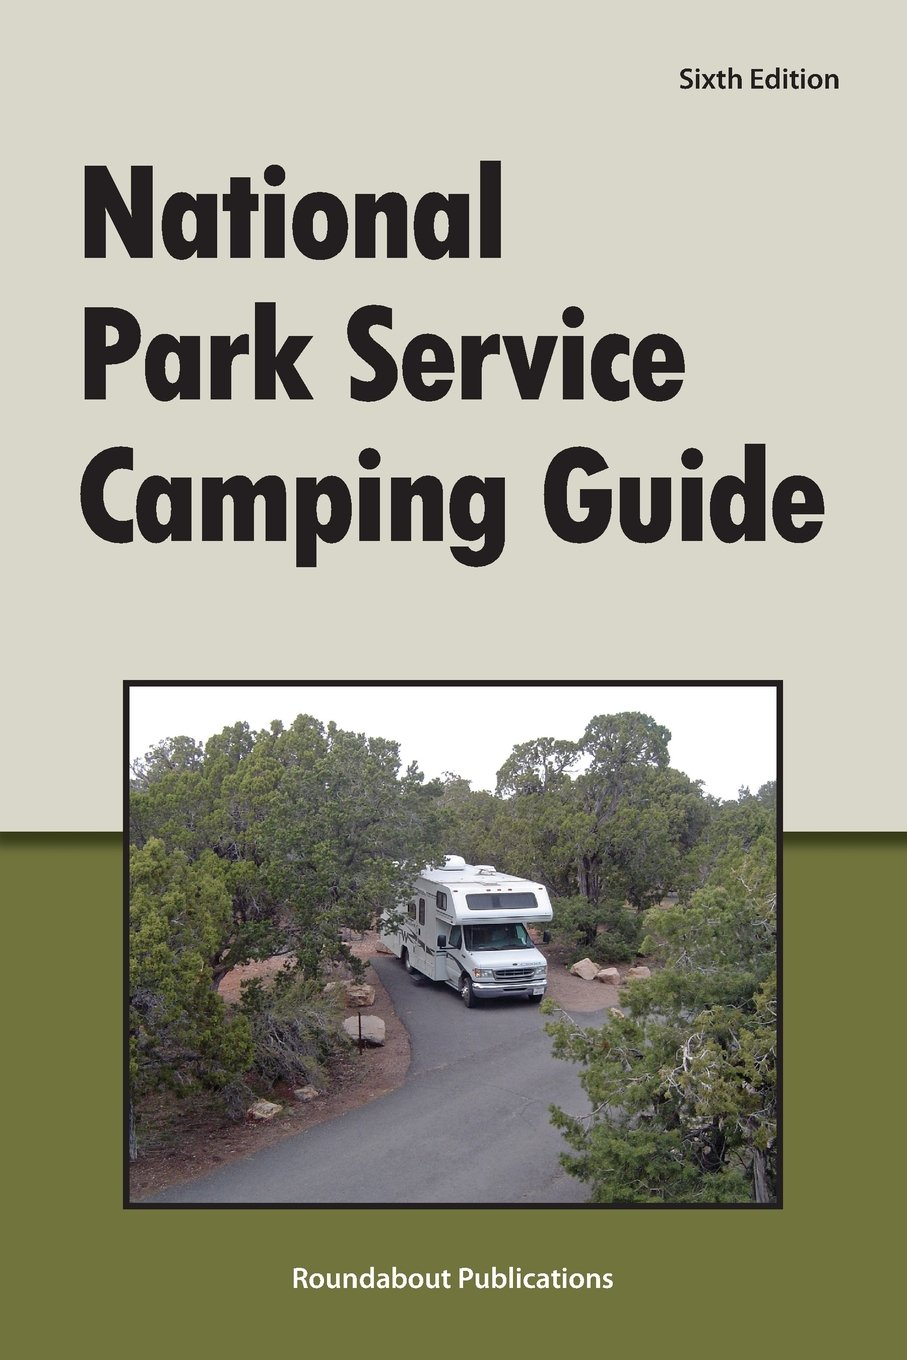 National Park Service Camping Guide, 6th Edition: Roundabout Publications:  9781885464644: Amazon.com: Books